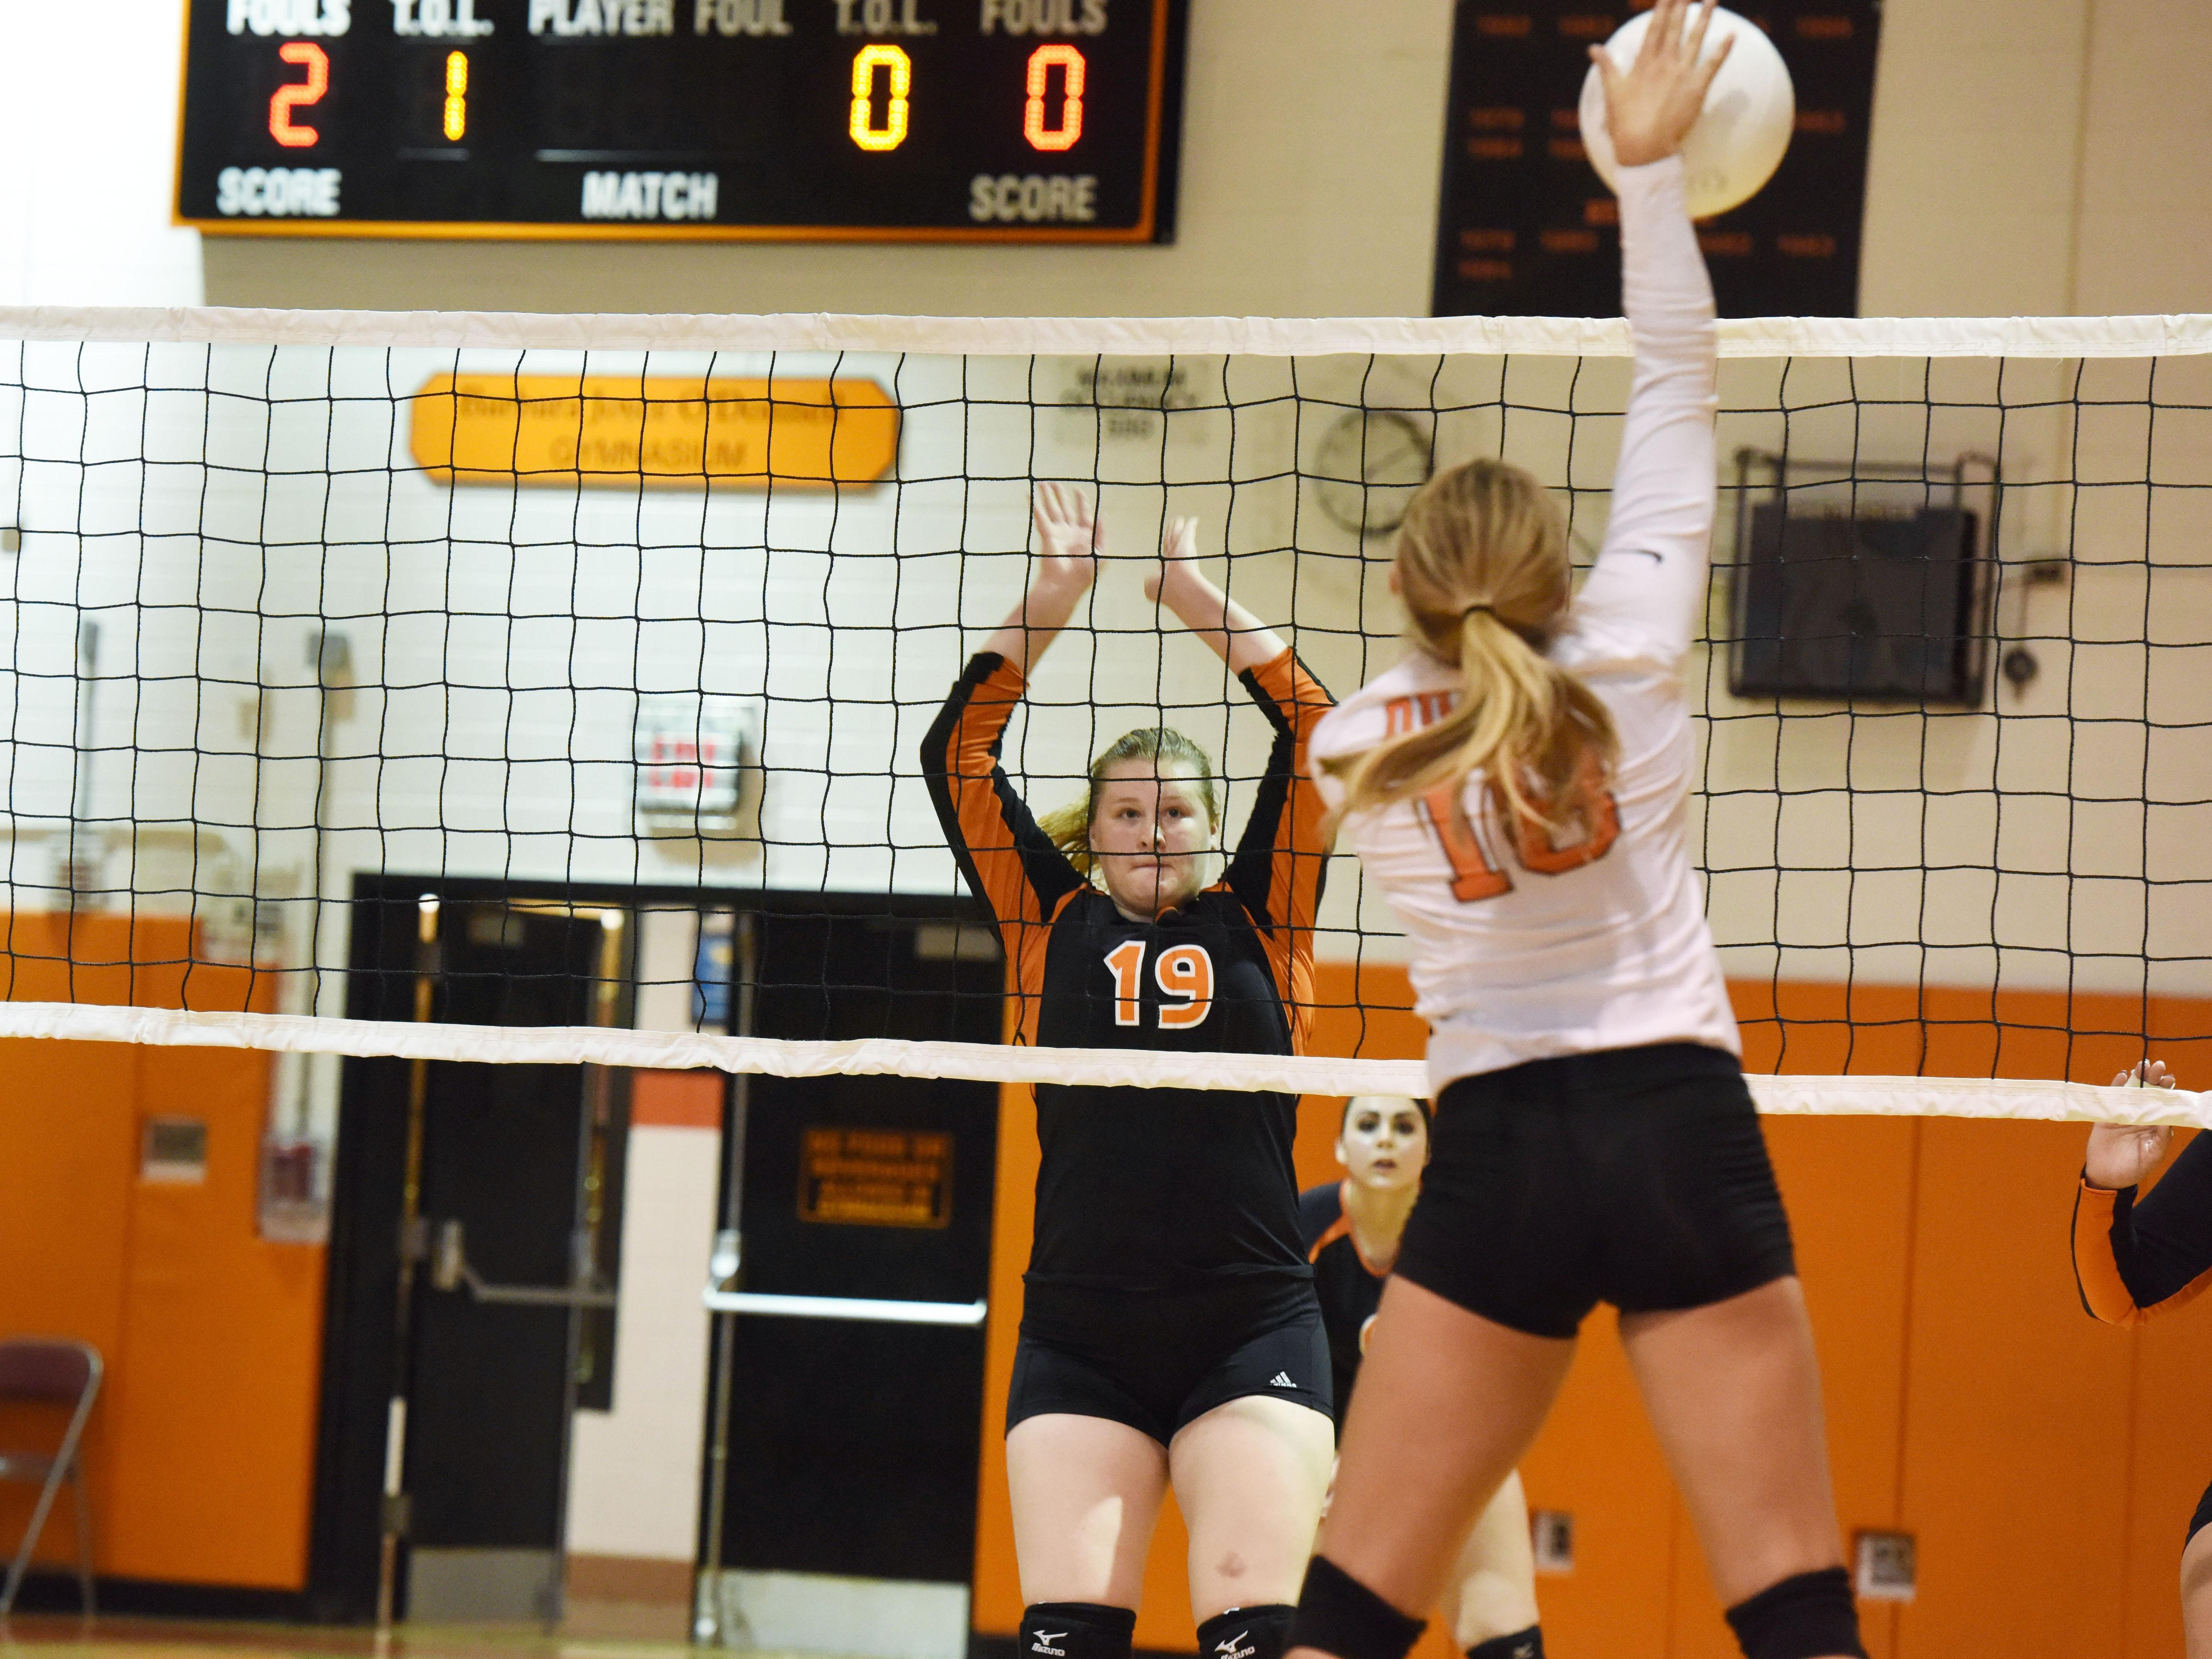 Dover's Brianna Swart, left, goes to block a spike from Marlboro's Amber Mianti, right.